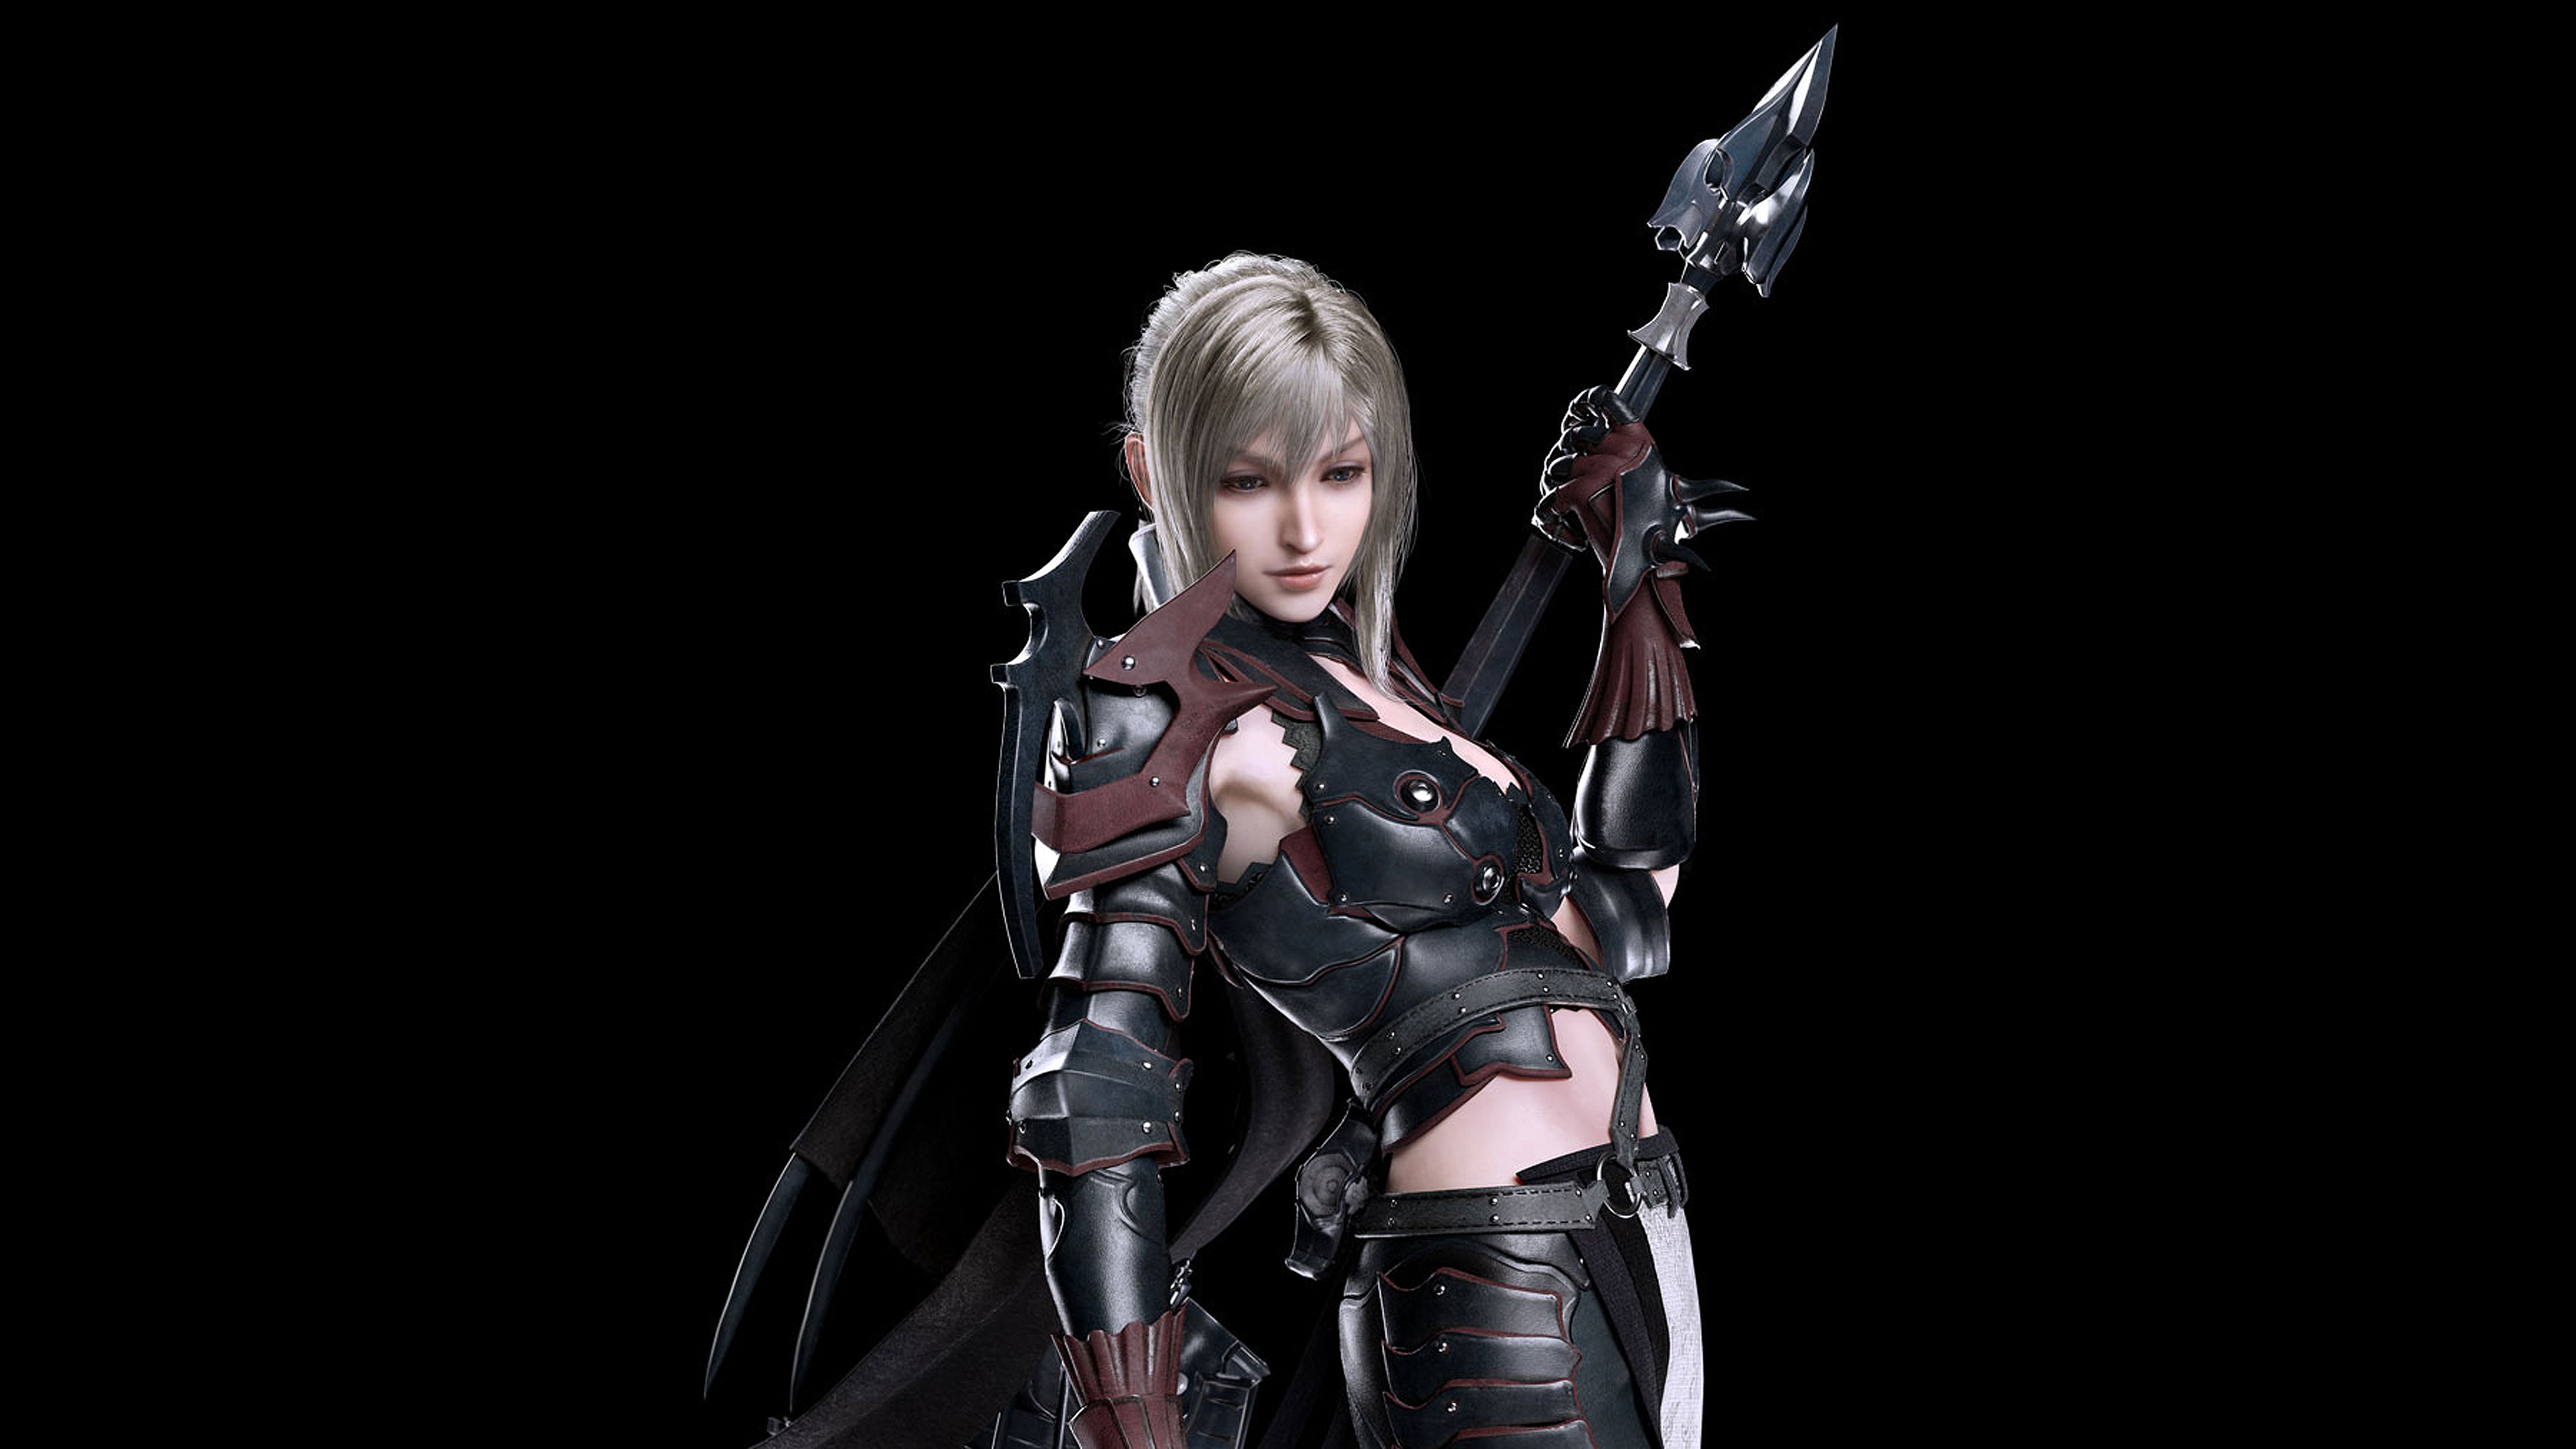 4k Final Fantasy Xv Hd Games 4k Wallpapers Images: Aranea Highwind Final Fantasy Xv, HD Games, 4k Wallpapers